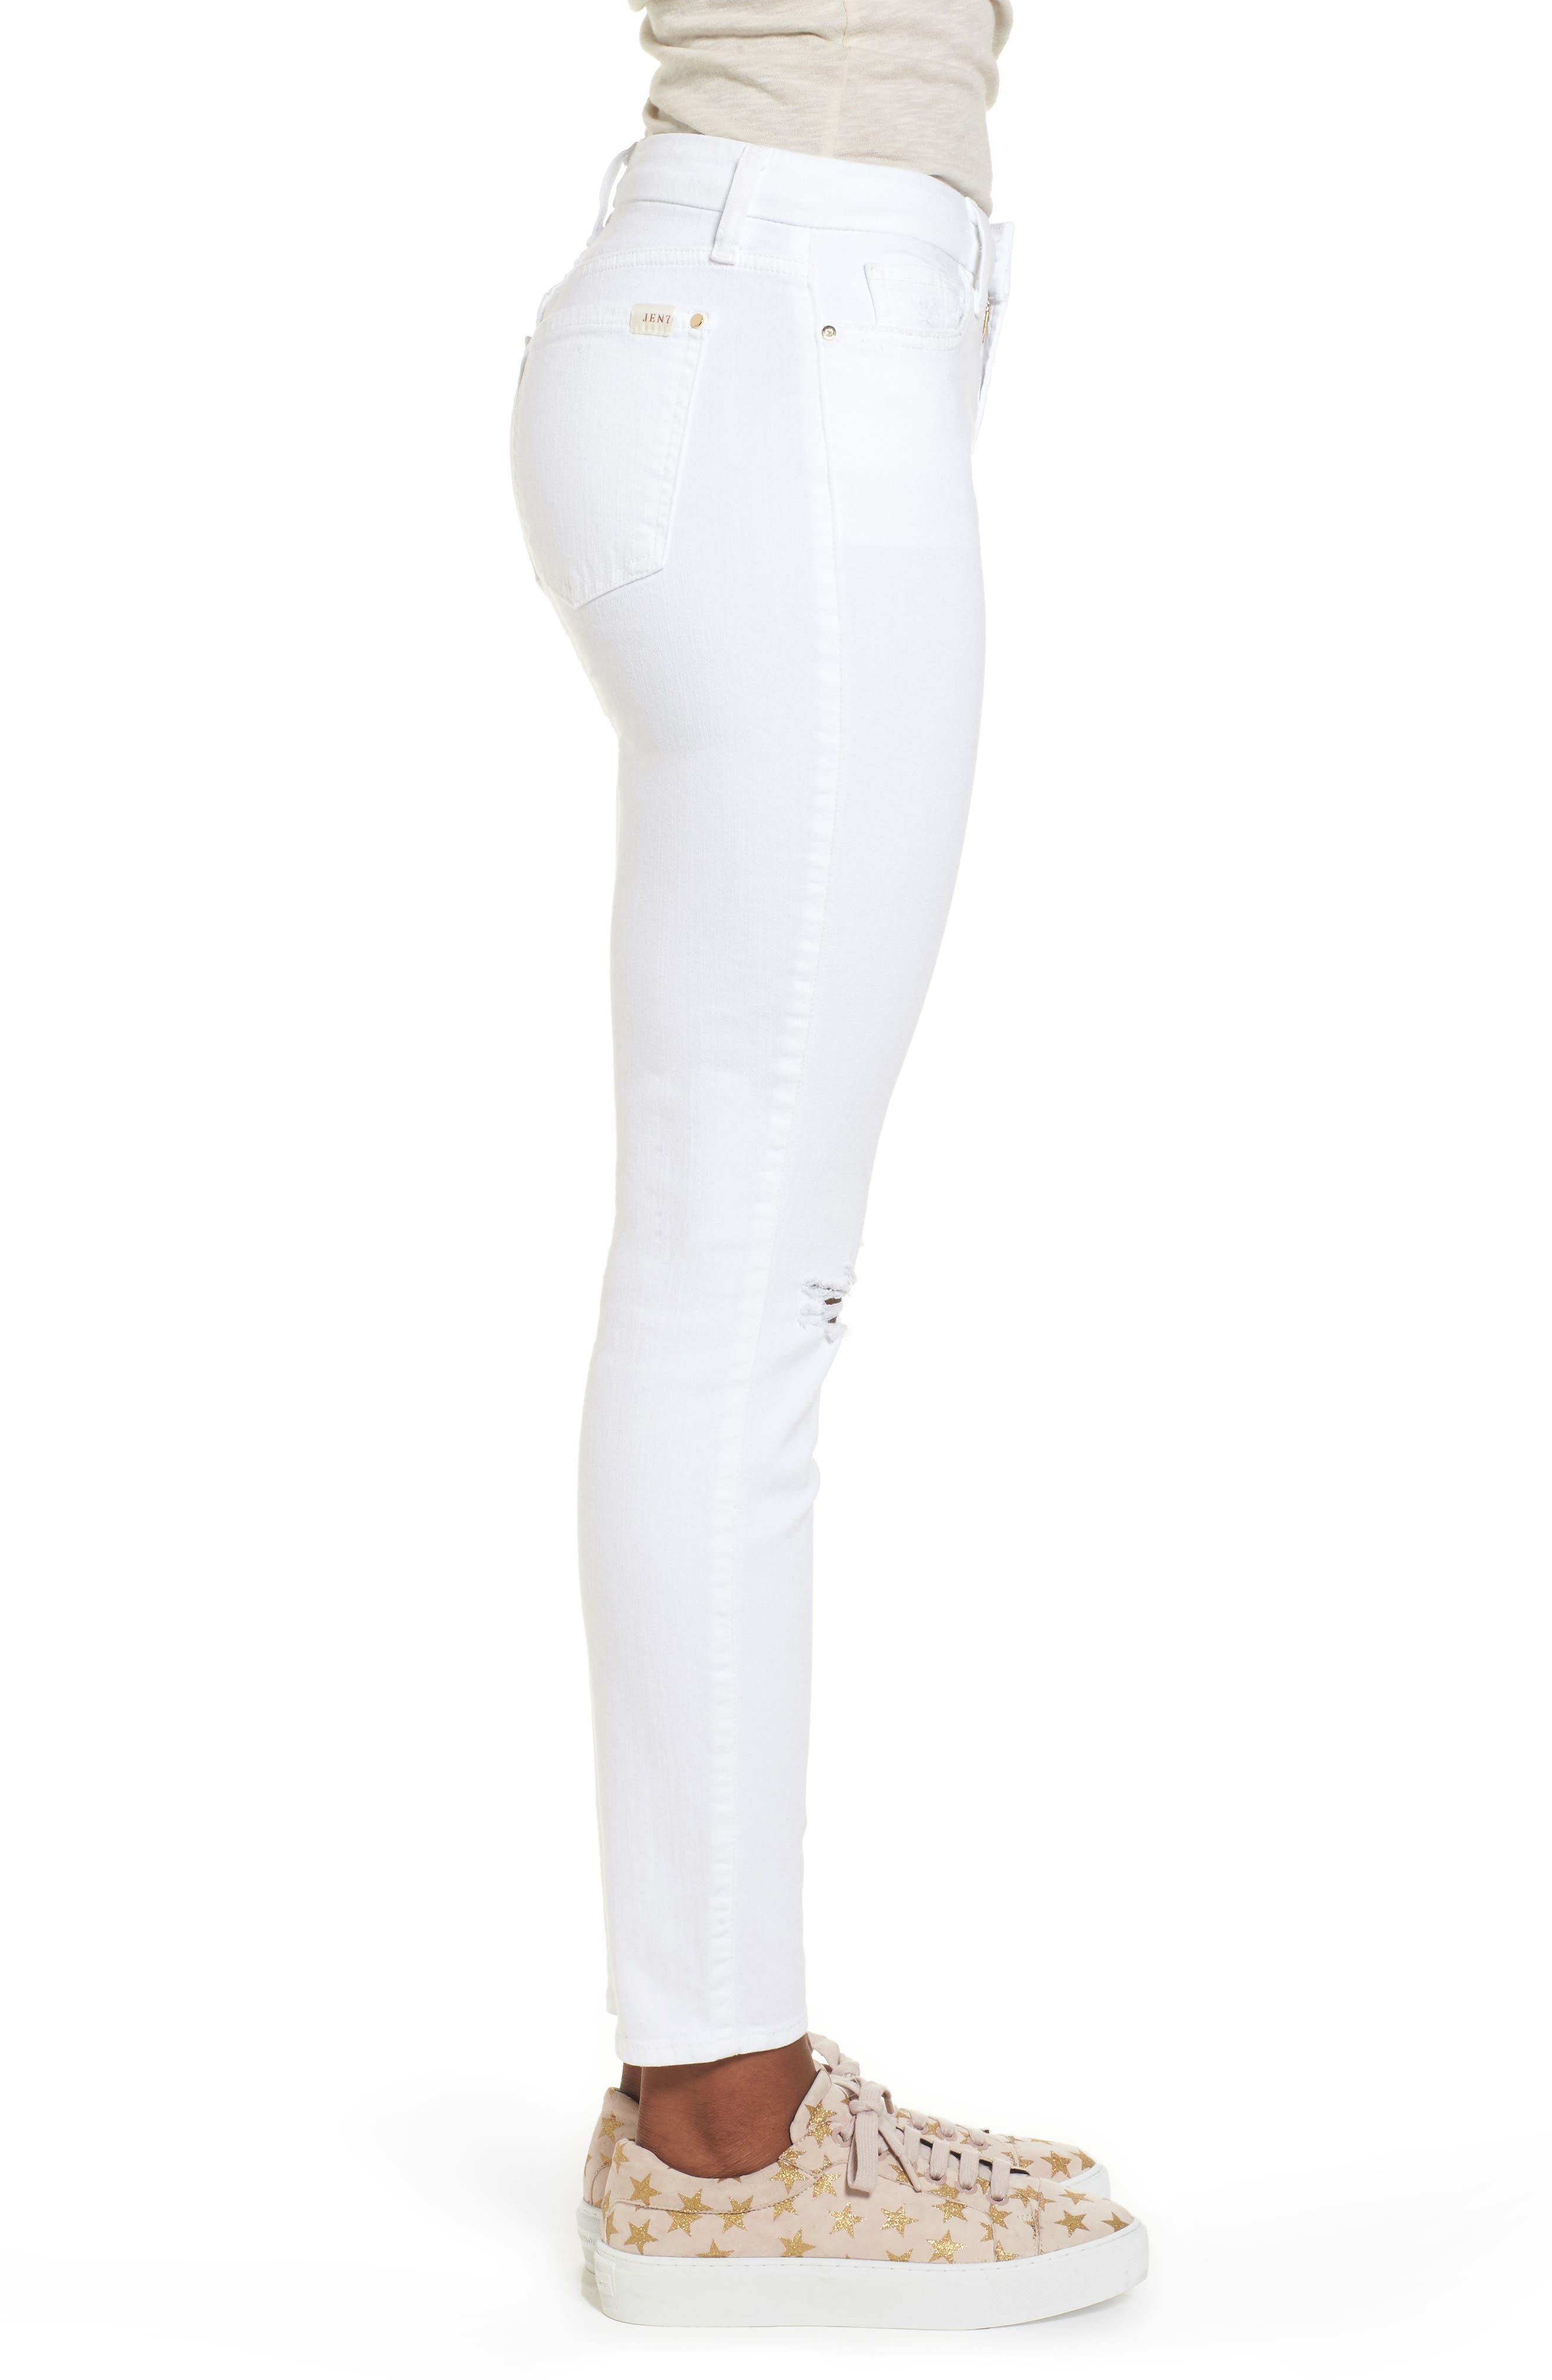 JEN7 BY 7 FOR ALL MANKIND,                             Ankle Skinny Jeans,                             Alternate thumbnail 3, color,                             WHITE 2